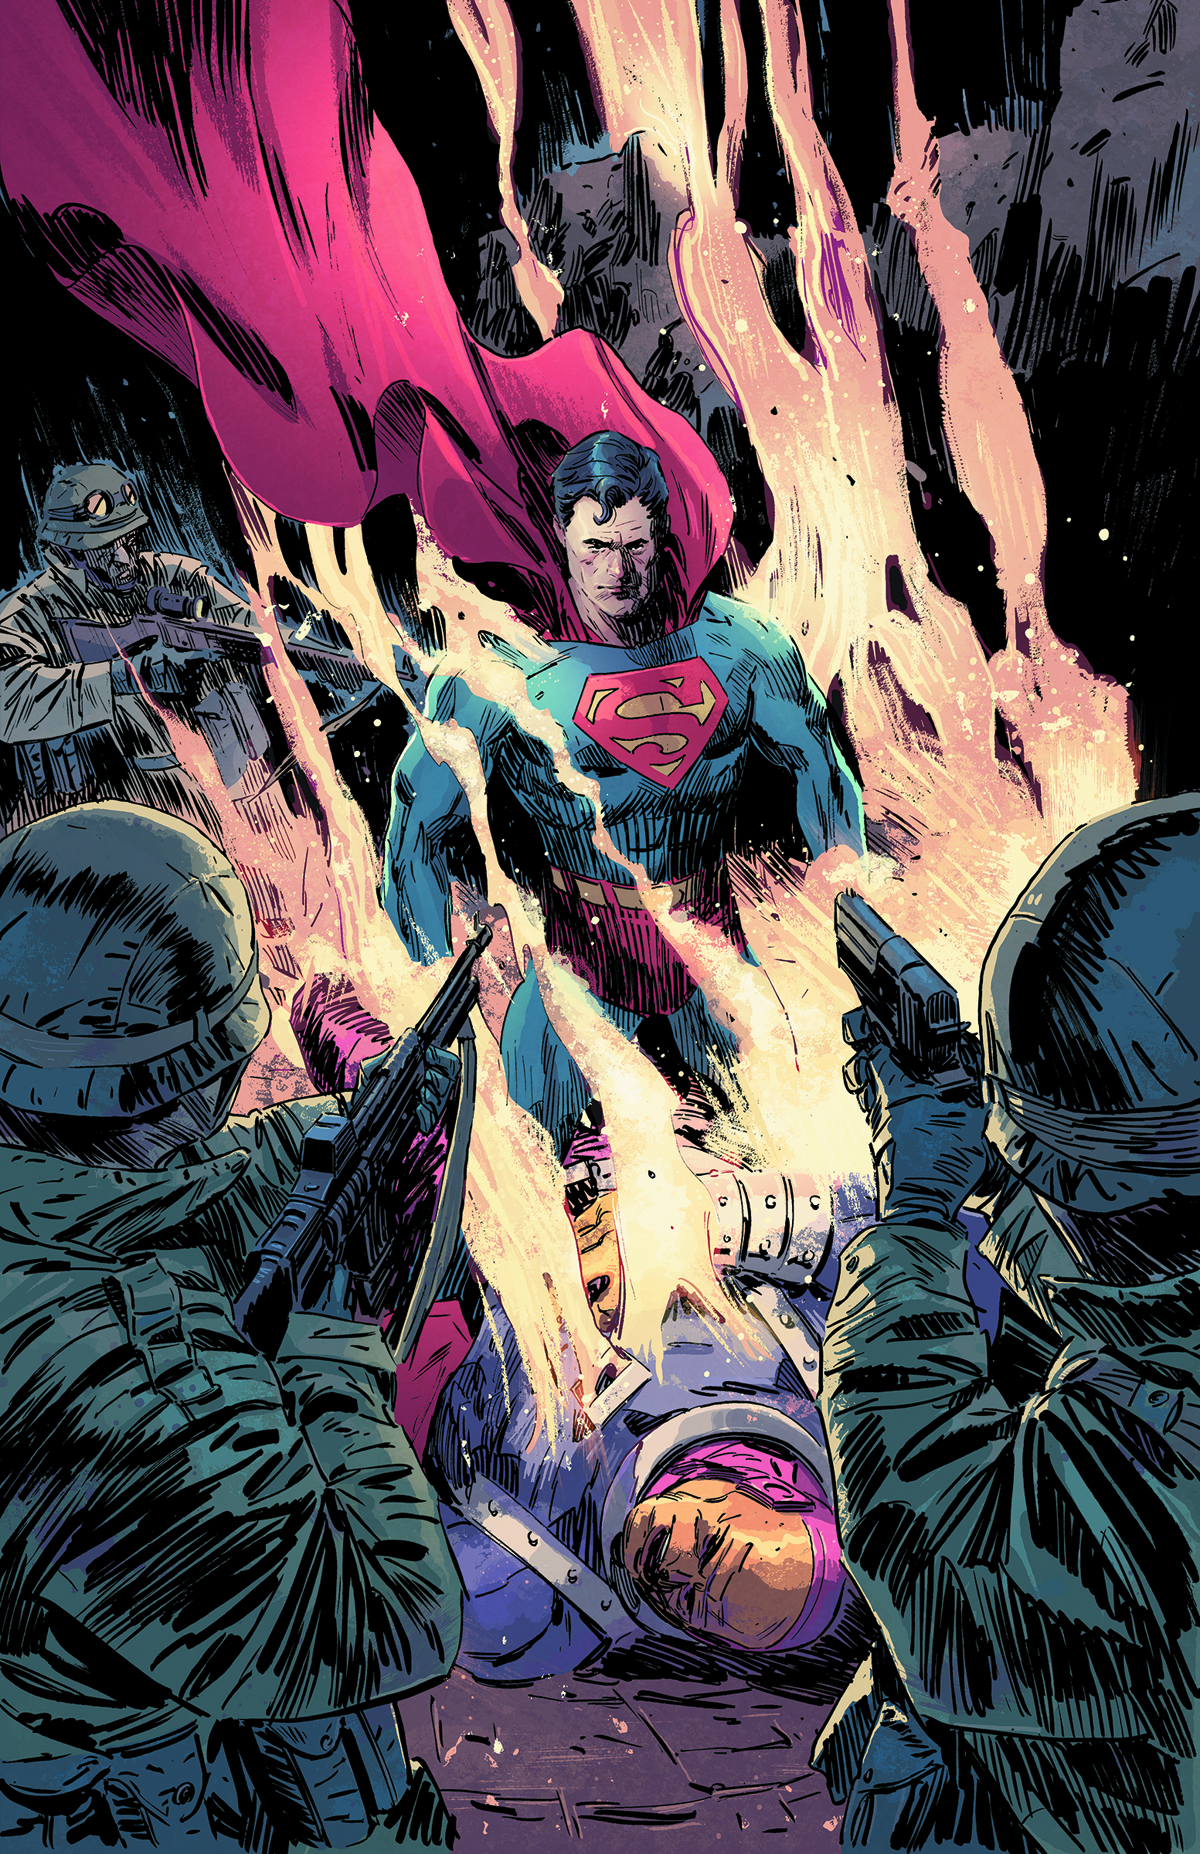 ADVENTURES OF SUPERMAN #6